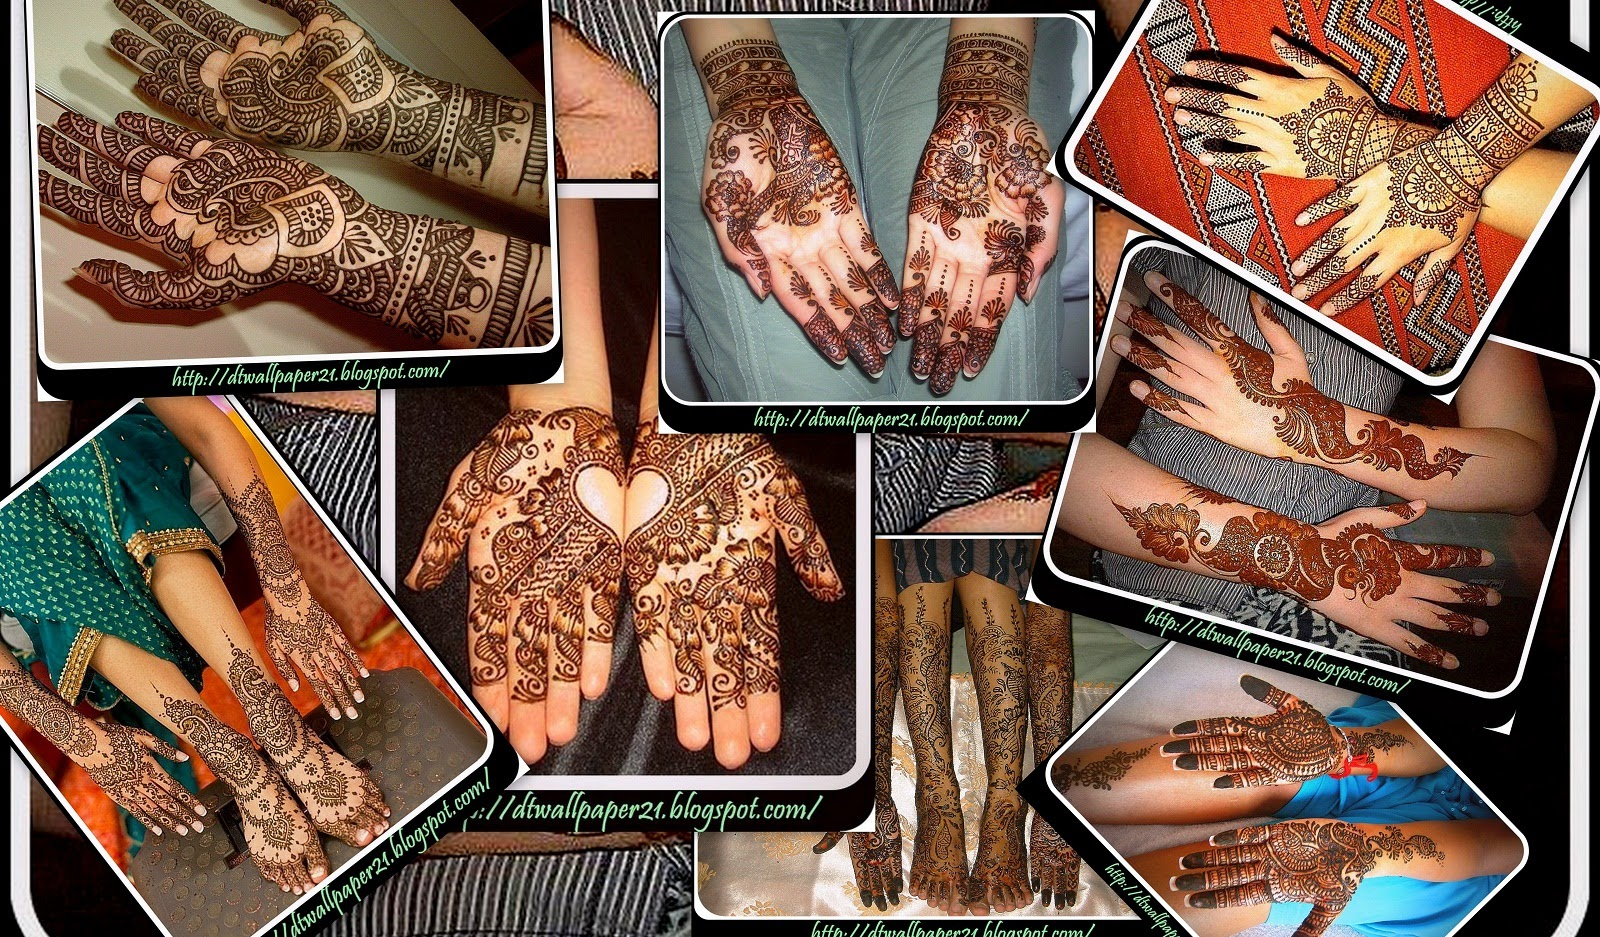 arts, mehndi designs tattoo, mehndi, free download mehndi design, hd mehndi wallpaper